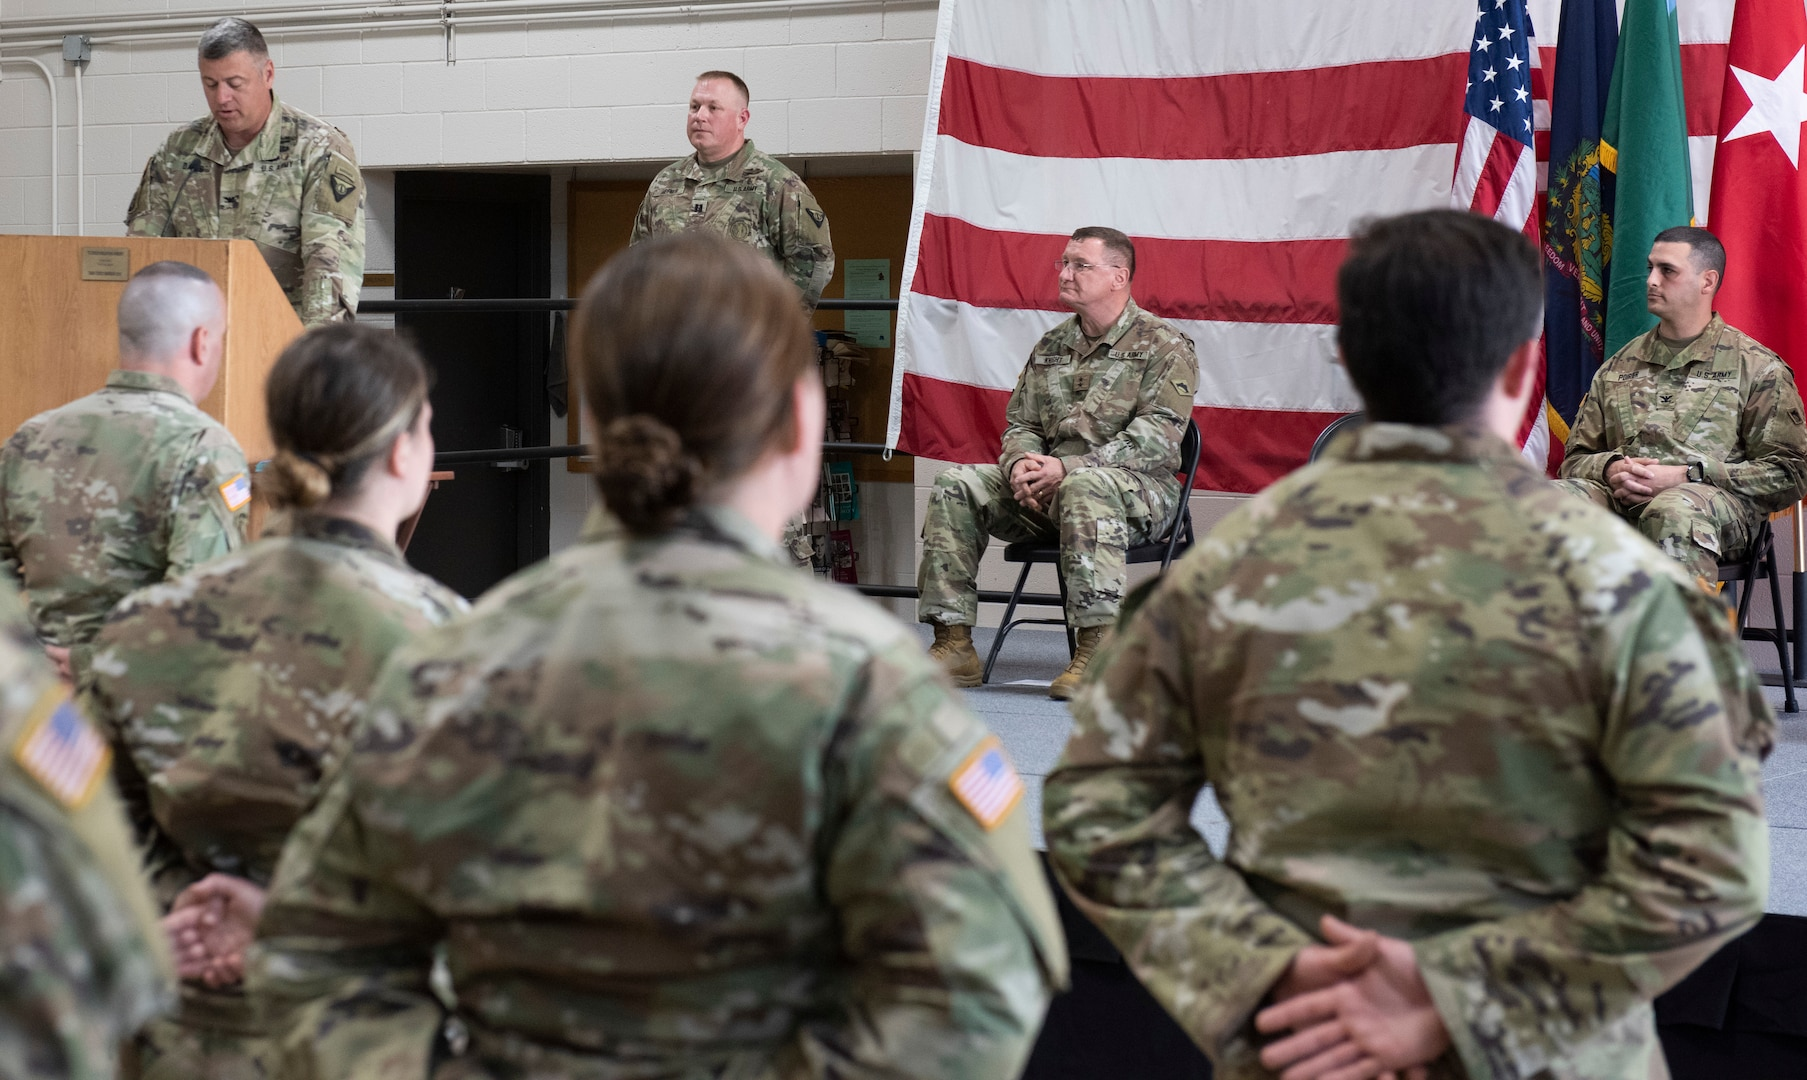 Col. Justin Davis, director operations for the Vermont Army National Guard, delivers remarks at the sendoff ceremony for Task Force Mansfield at Camp Johnson, Vermont, May 18, 2021. The Soldiers in Task Force Mansfield are among the last of more than 1,000 slated to deploy to Europe and the Middle East in support of federal missions. (U.S. Army National Guard photo by Don Branum)